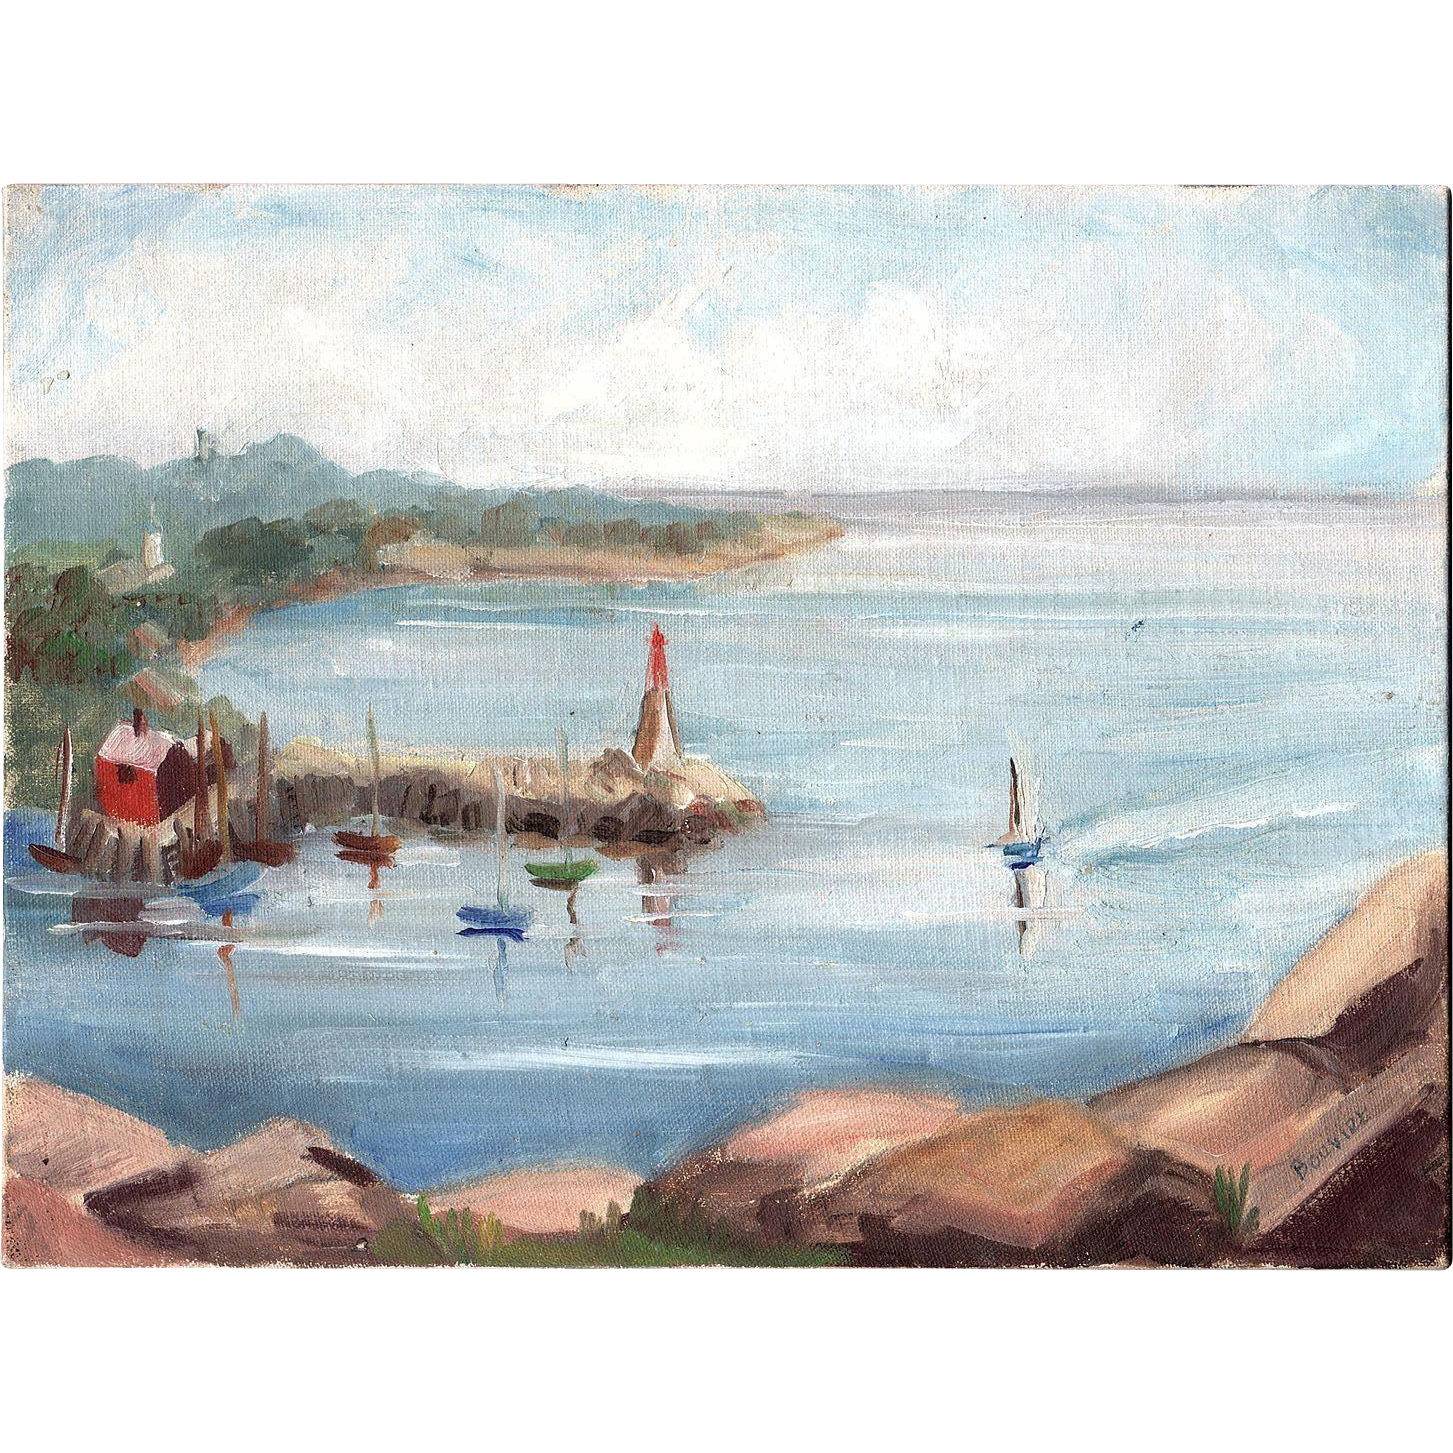 ROCKPORT HARBOR 1961 oil on board signed BOUVIER